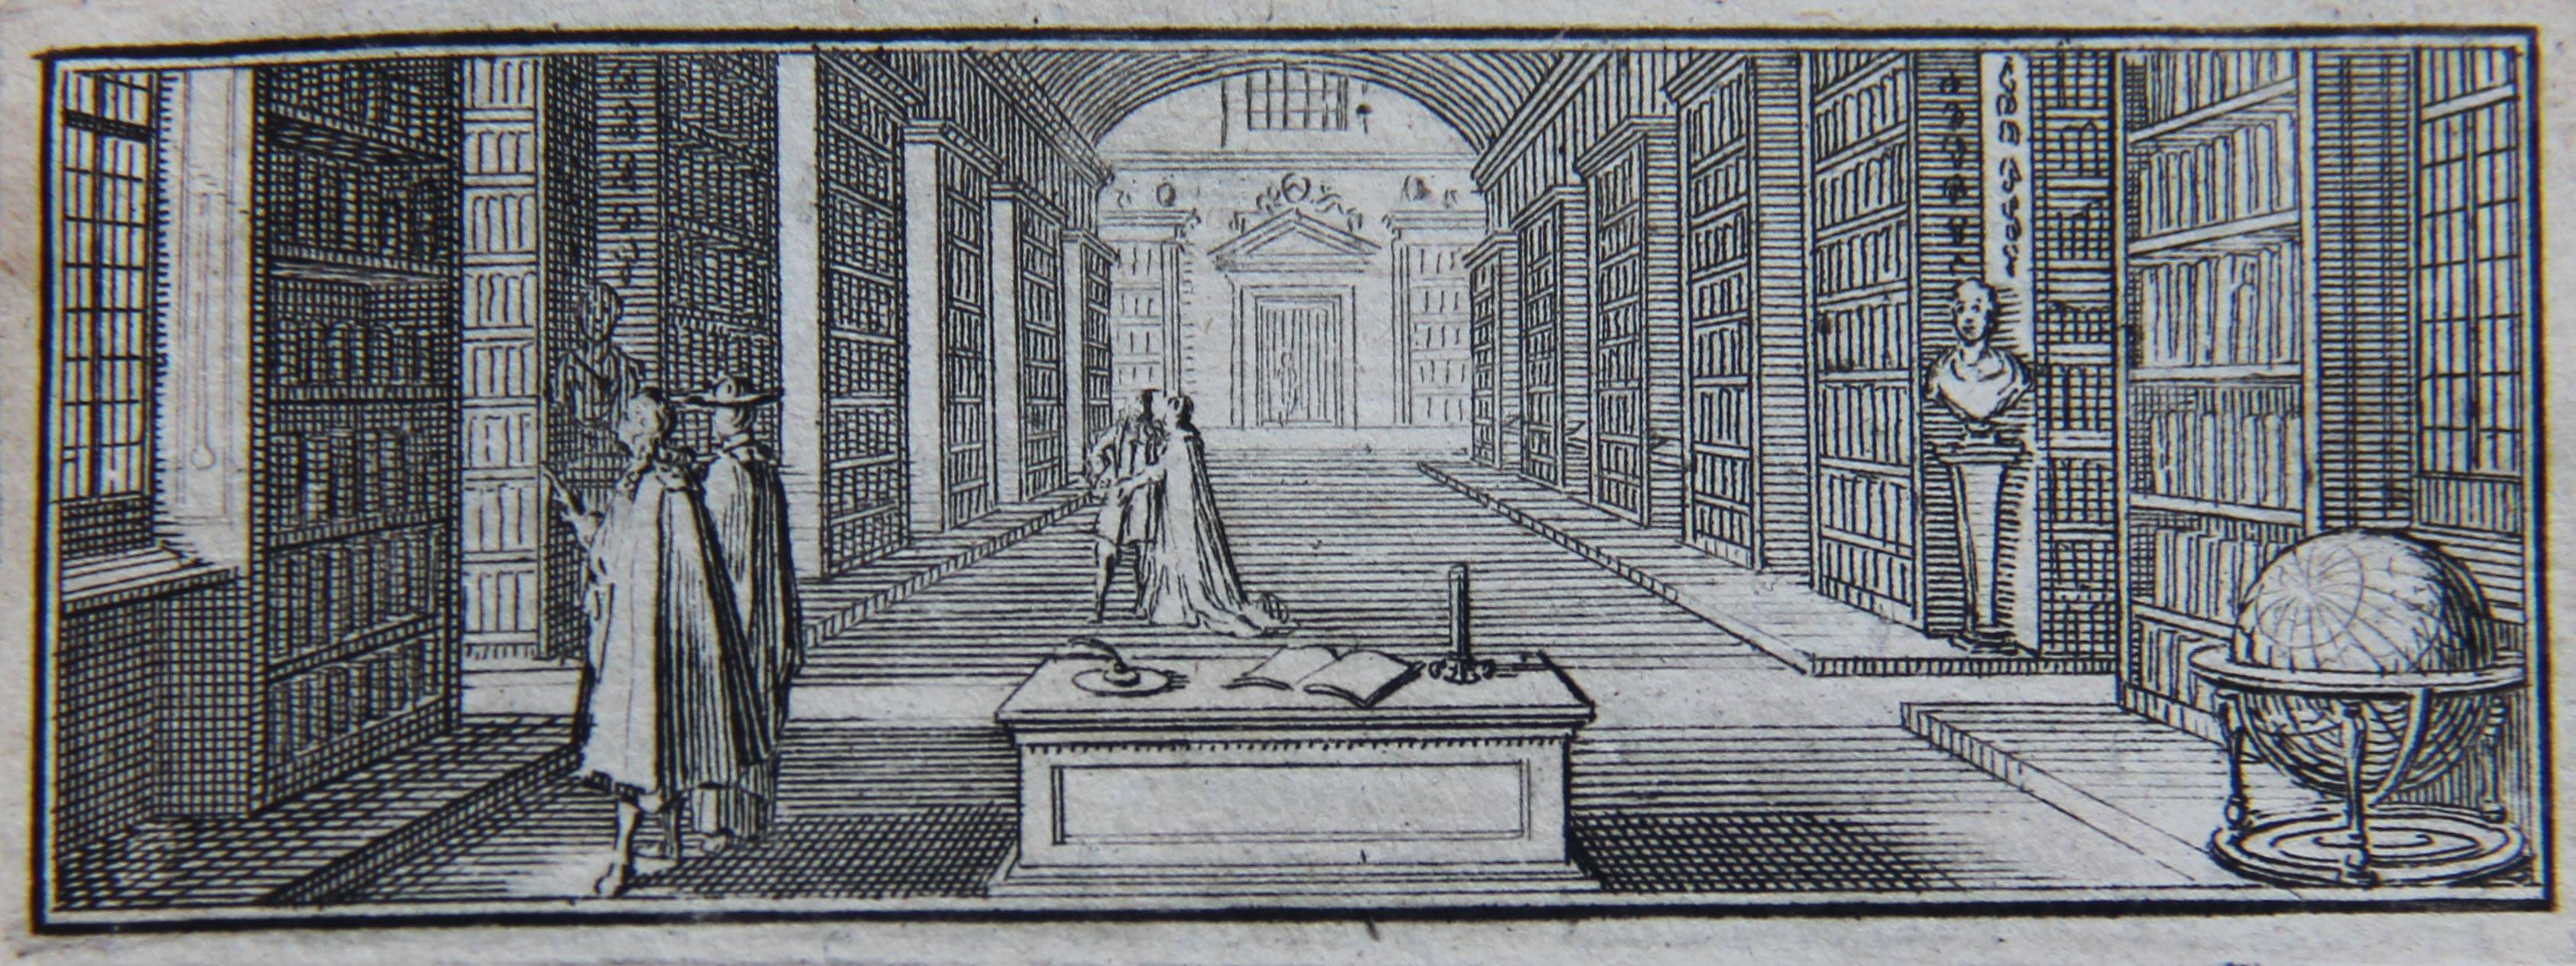 A 17th Century Handheld Library | Provenance Online Project